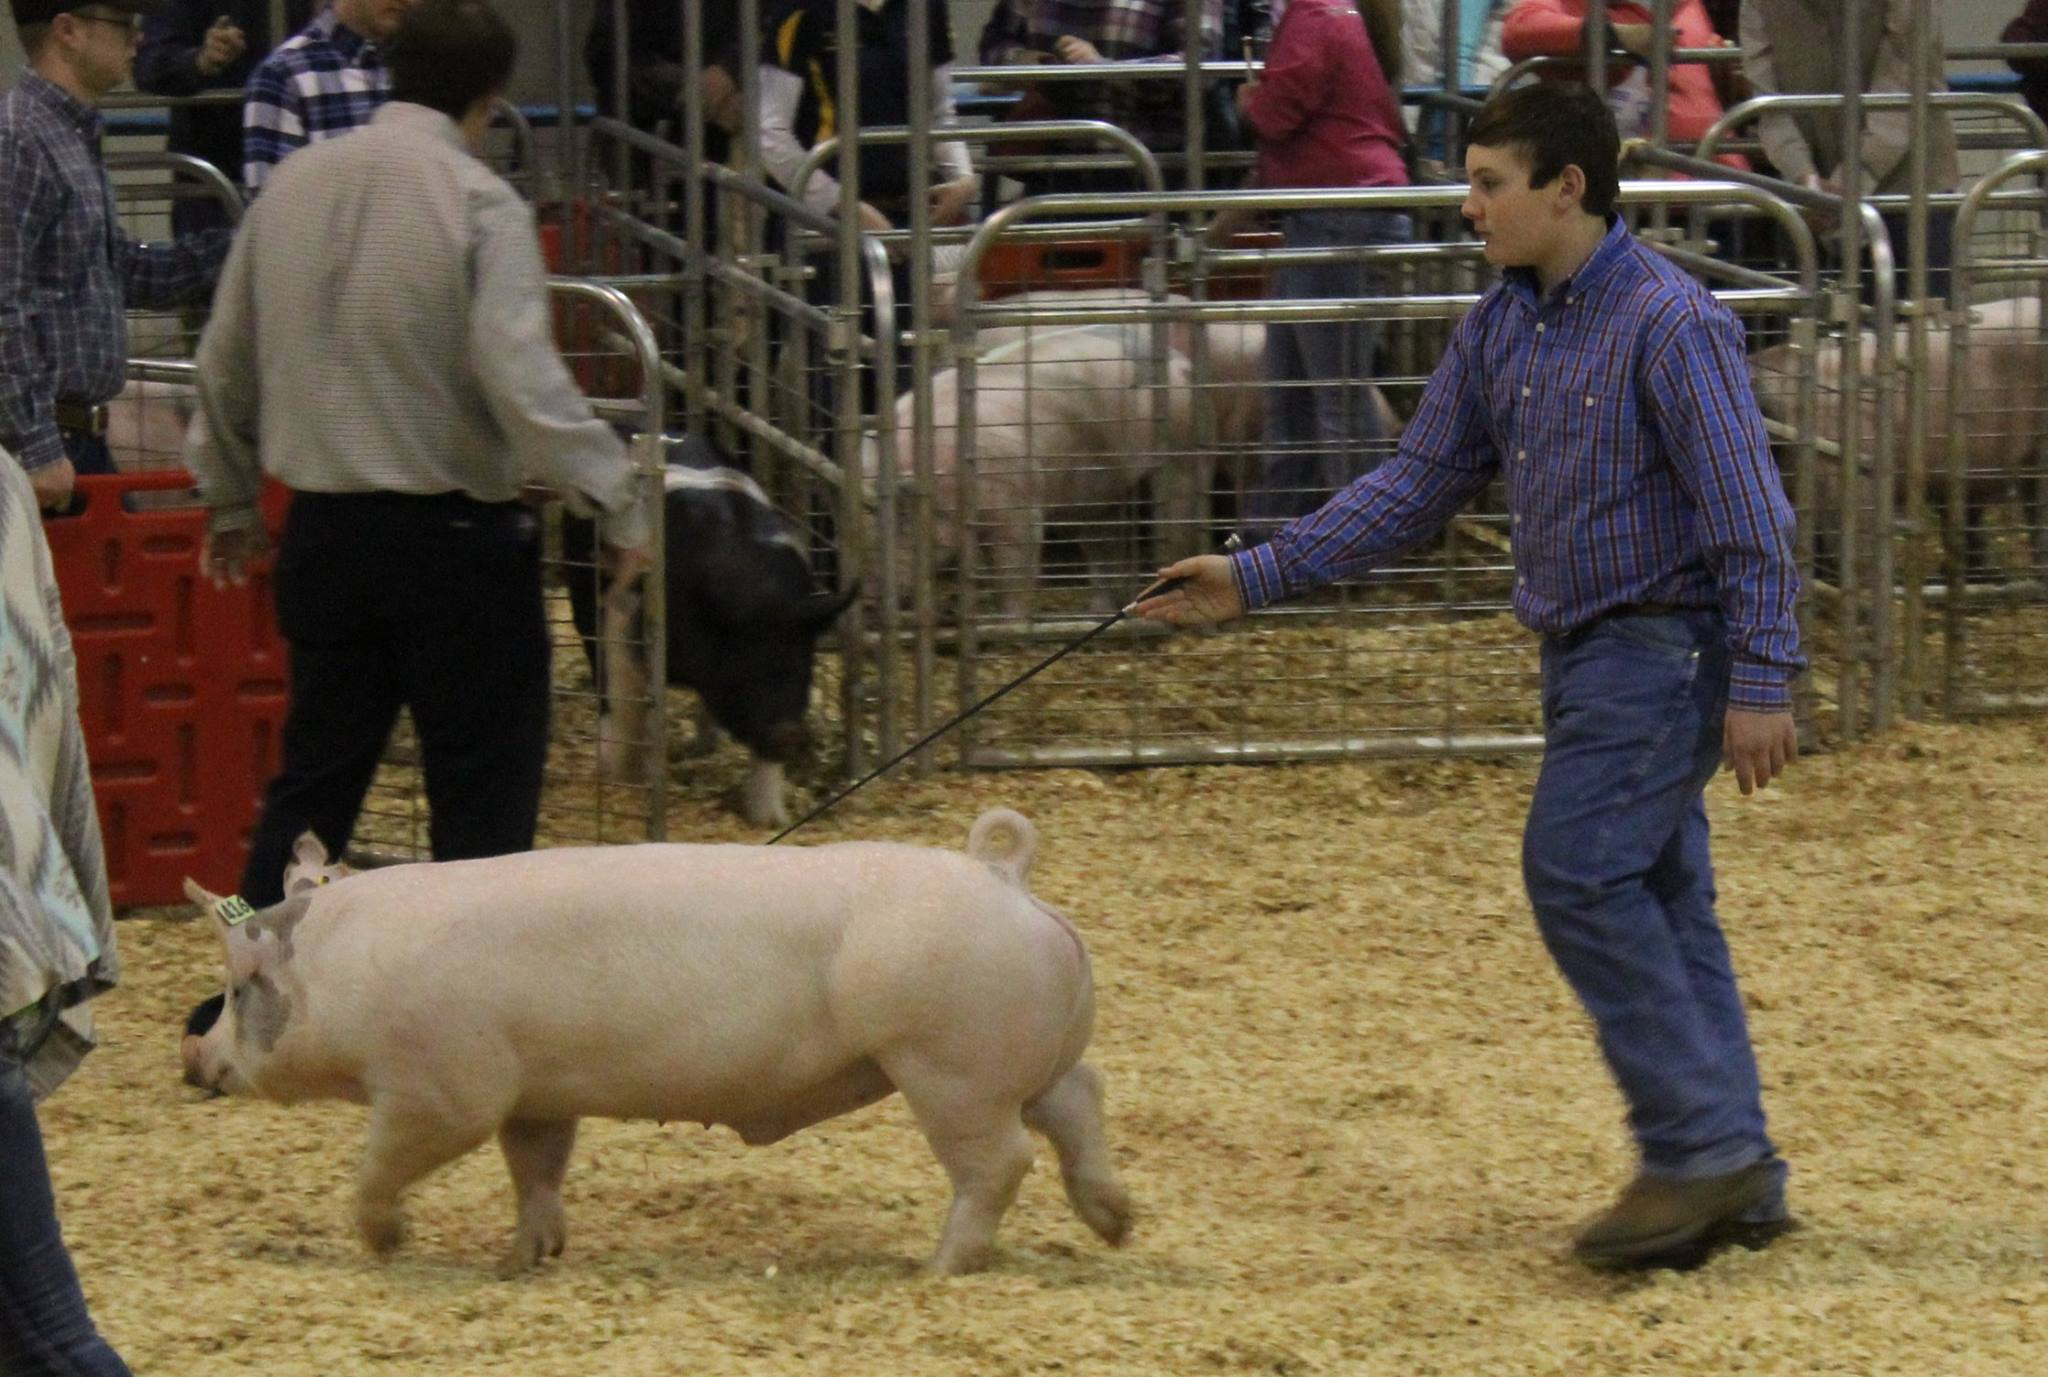 Will Prater 3rd in Class 2016 TN State Market Hog Show